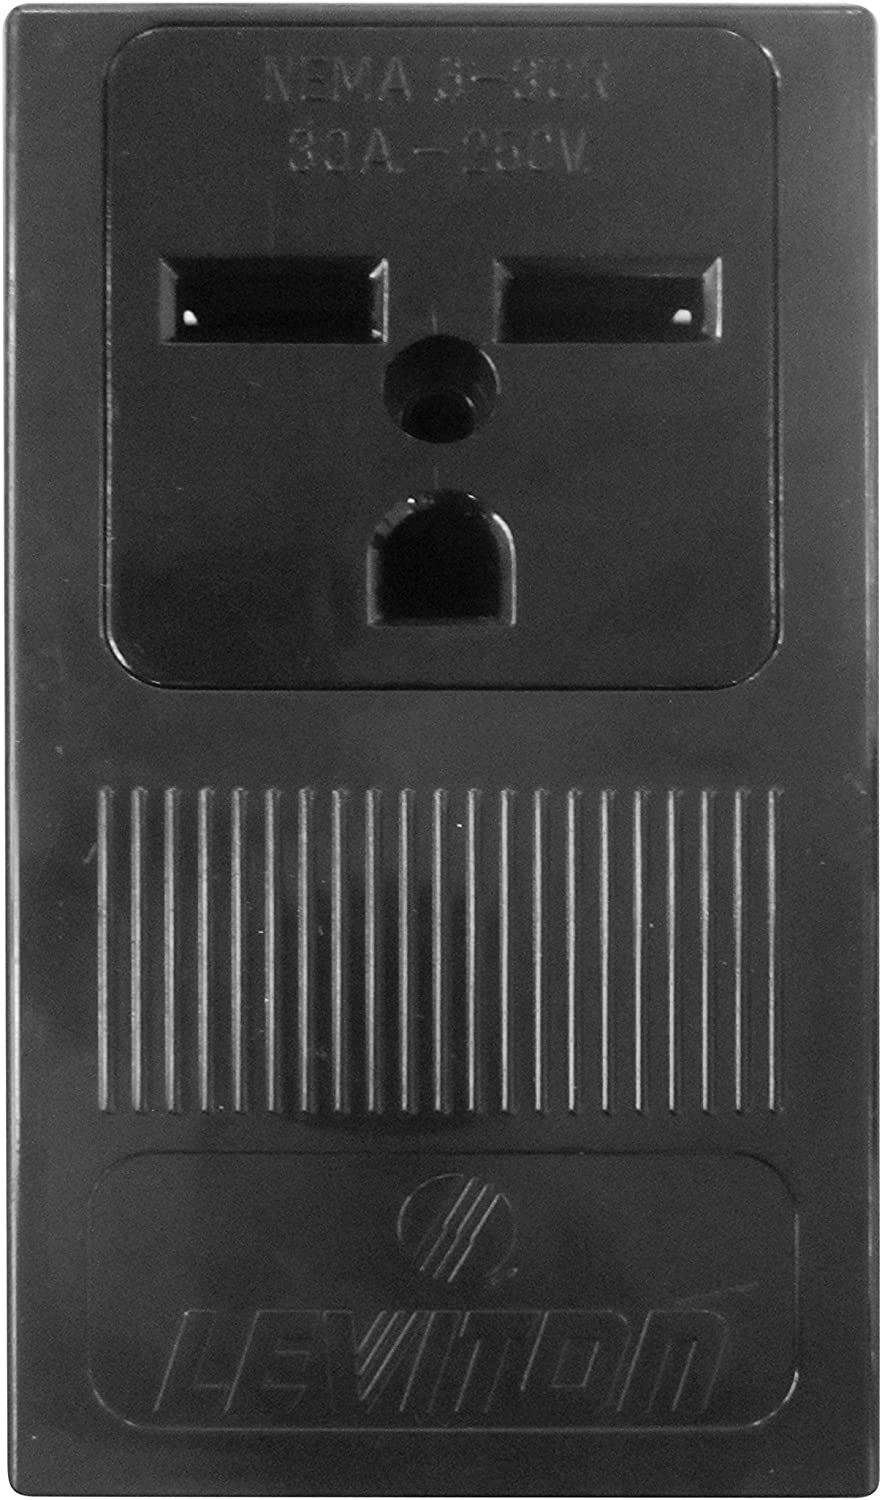 Pass & Seymour 1232CC6 Surface Mount Power Receptacle, 30-Amp, 250-volt, Black